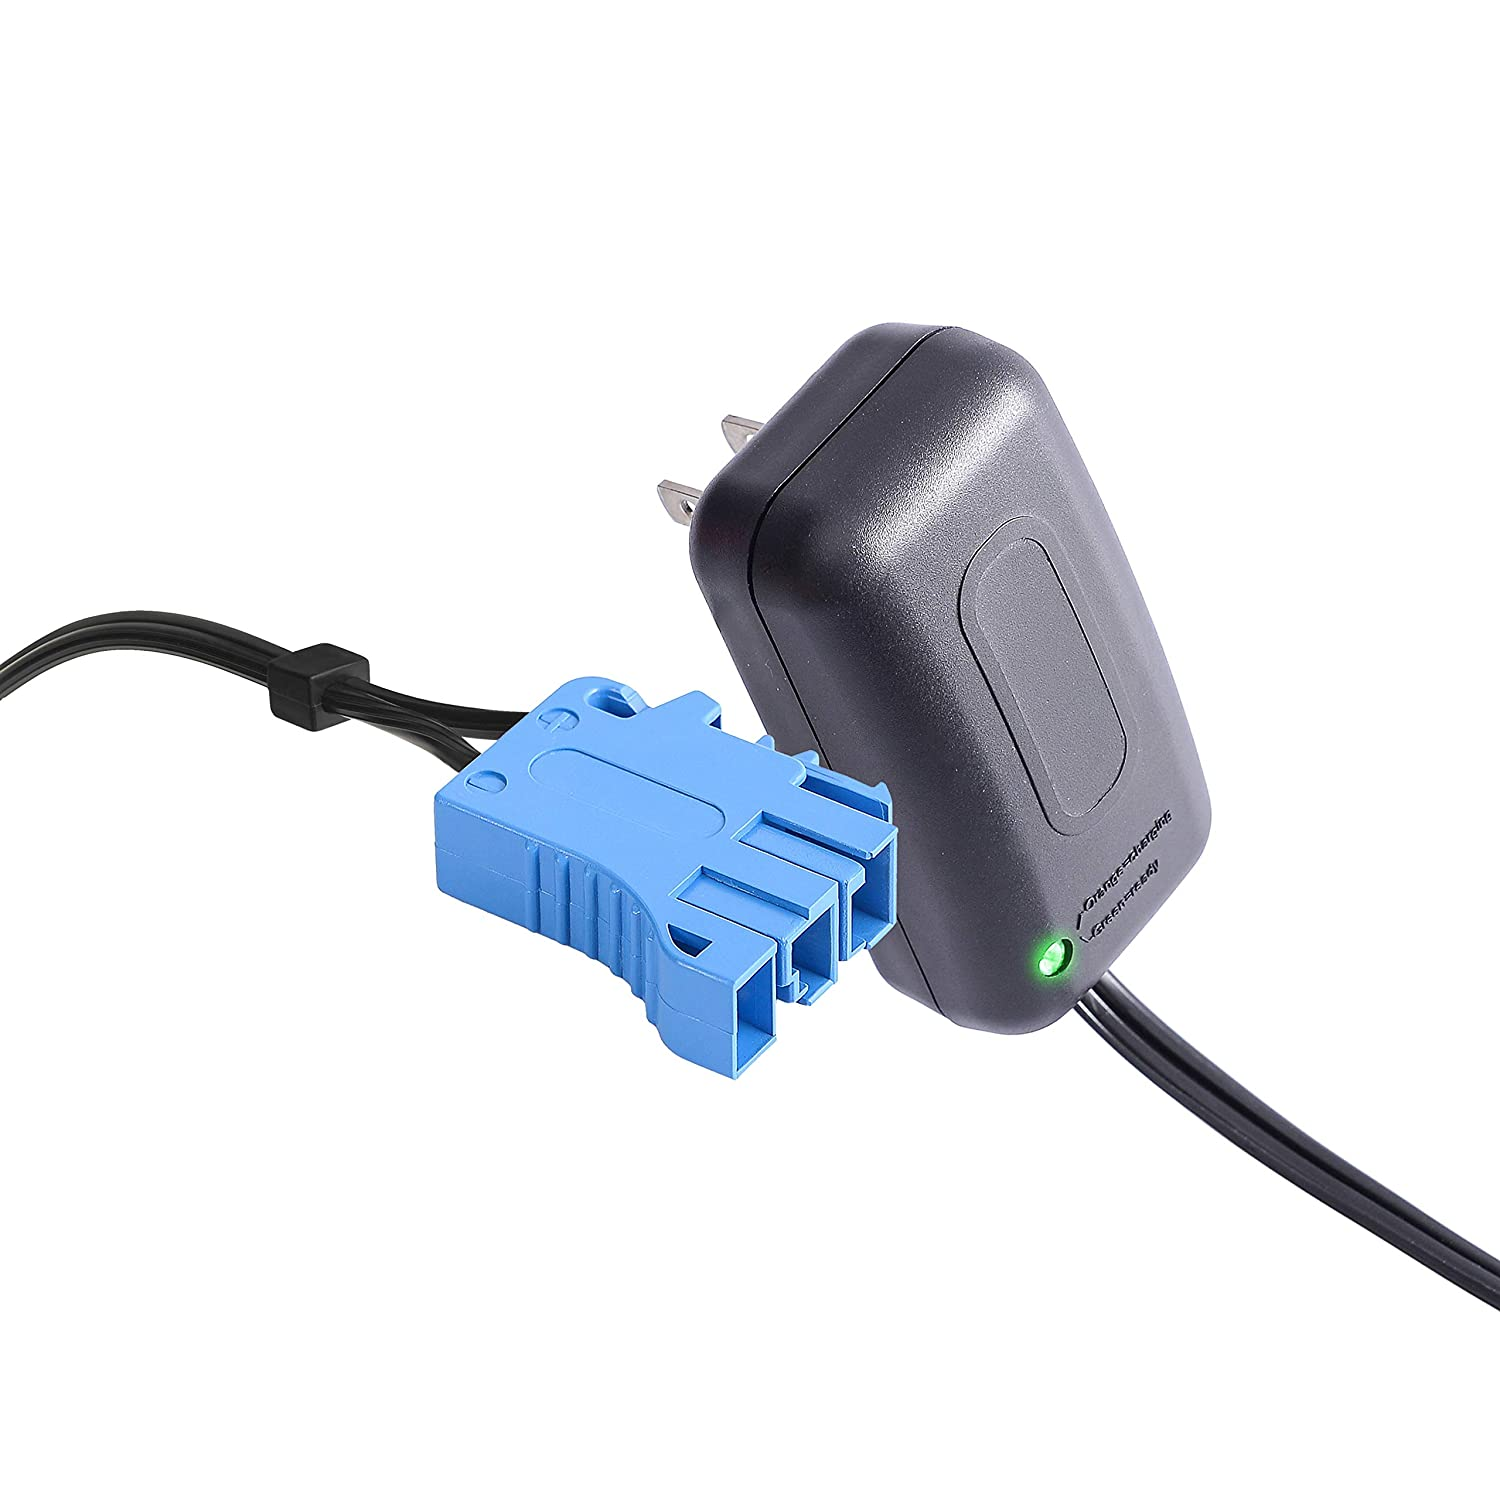 12 Volt Battery Charger for Peg Perego, 12V Charger Works with Peg-Perego  John Deere Ground Force Tractor Polaris RZR 900 John Deere Gator XUV Gaucho